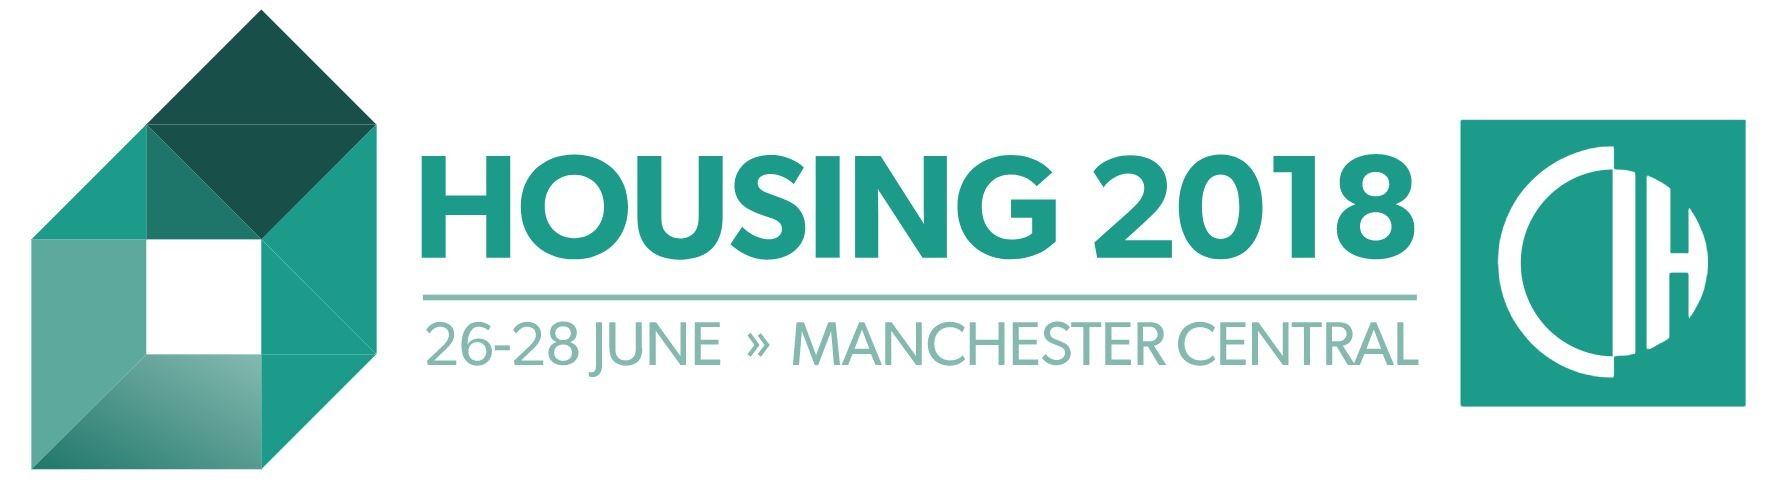 Chartered Institute of Housing Conference logo